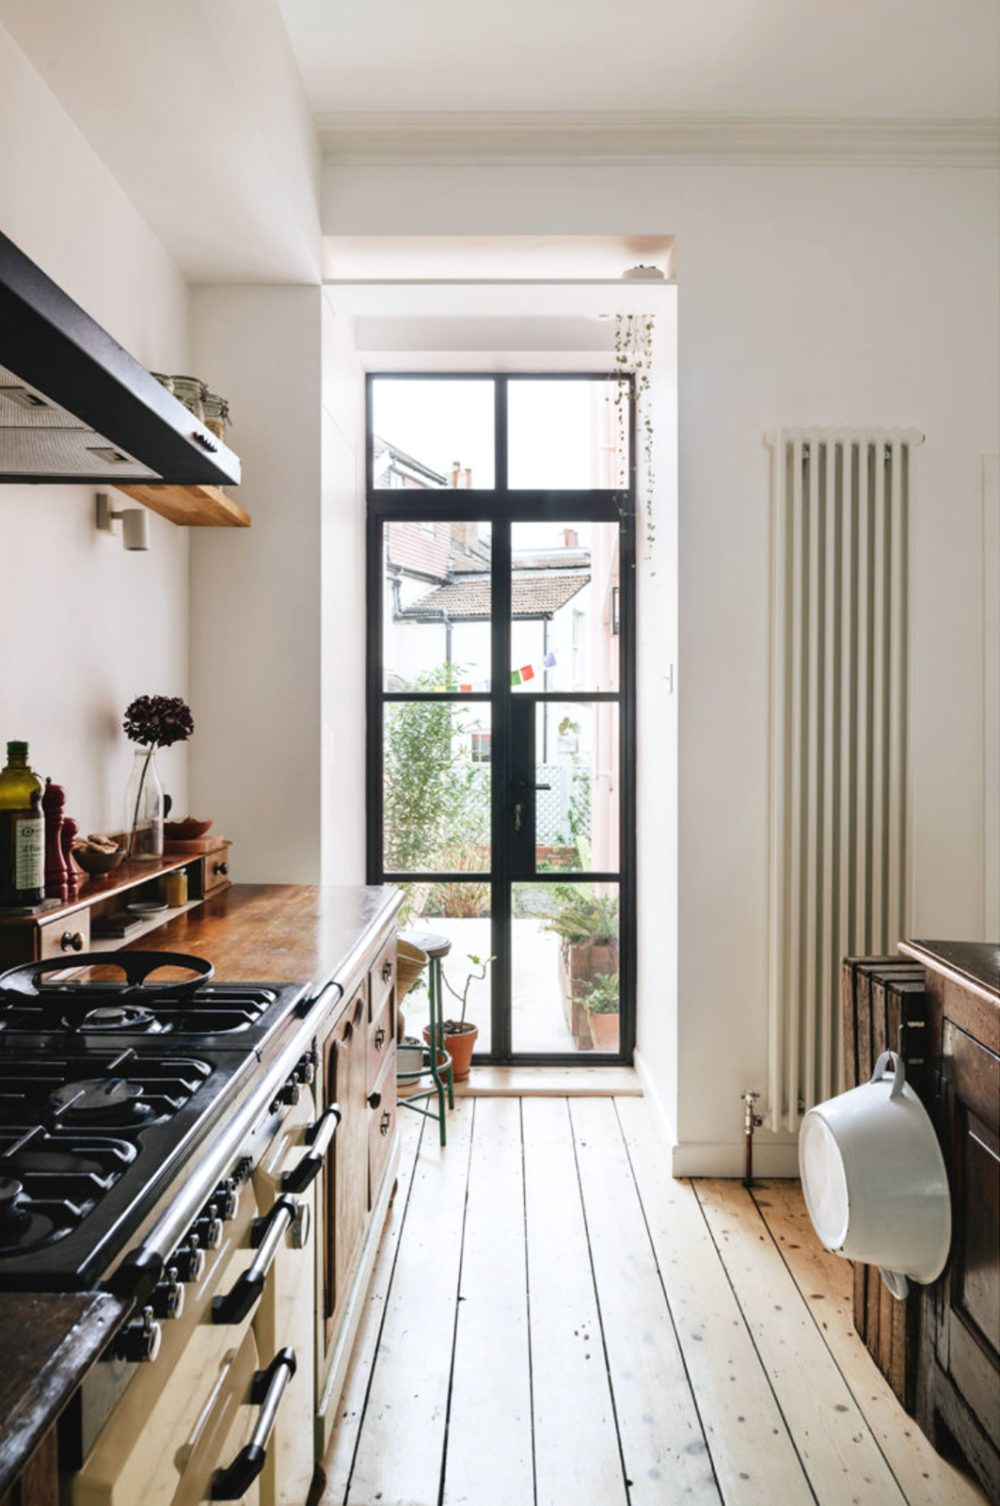 Vintage Modern Kitchen With Natural Wood Floors And Steel Framed Glass Doors And Windows Steel Stee In 2020 Vintage Modern Kitchen Home Decor Styles Home Remodeling